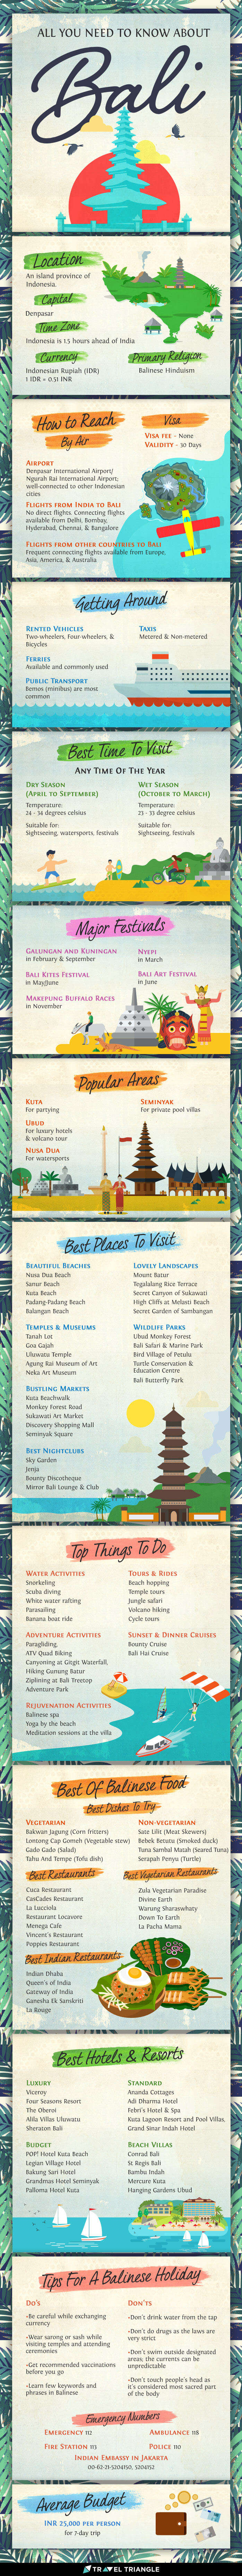 Infographic for all the things you should know about Bali